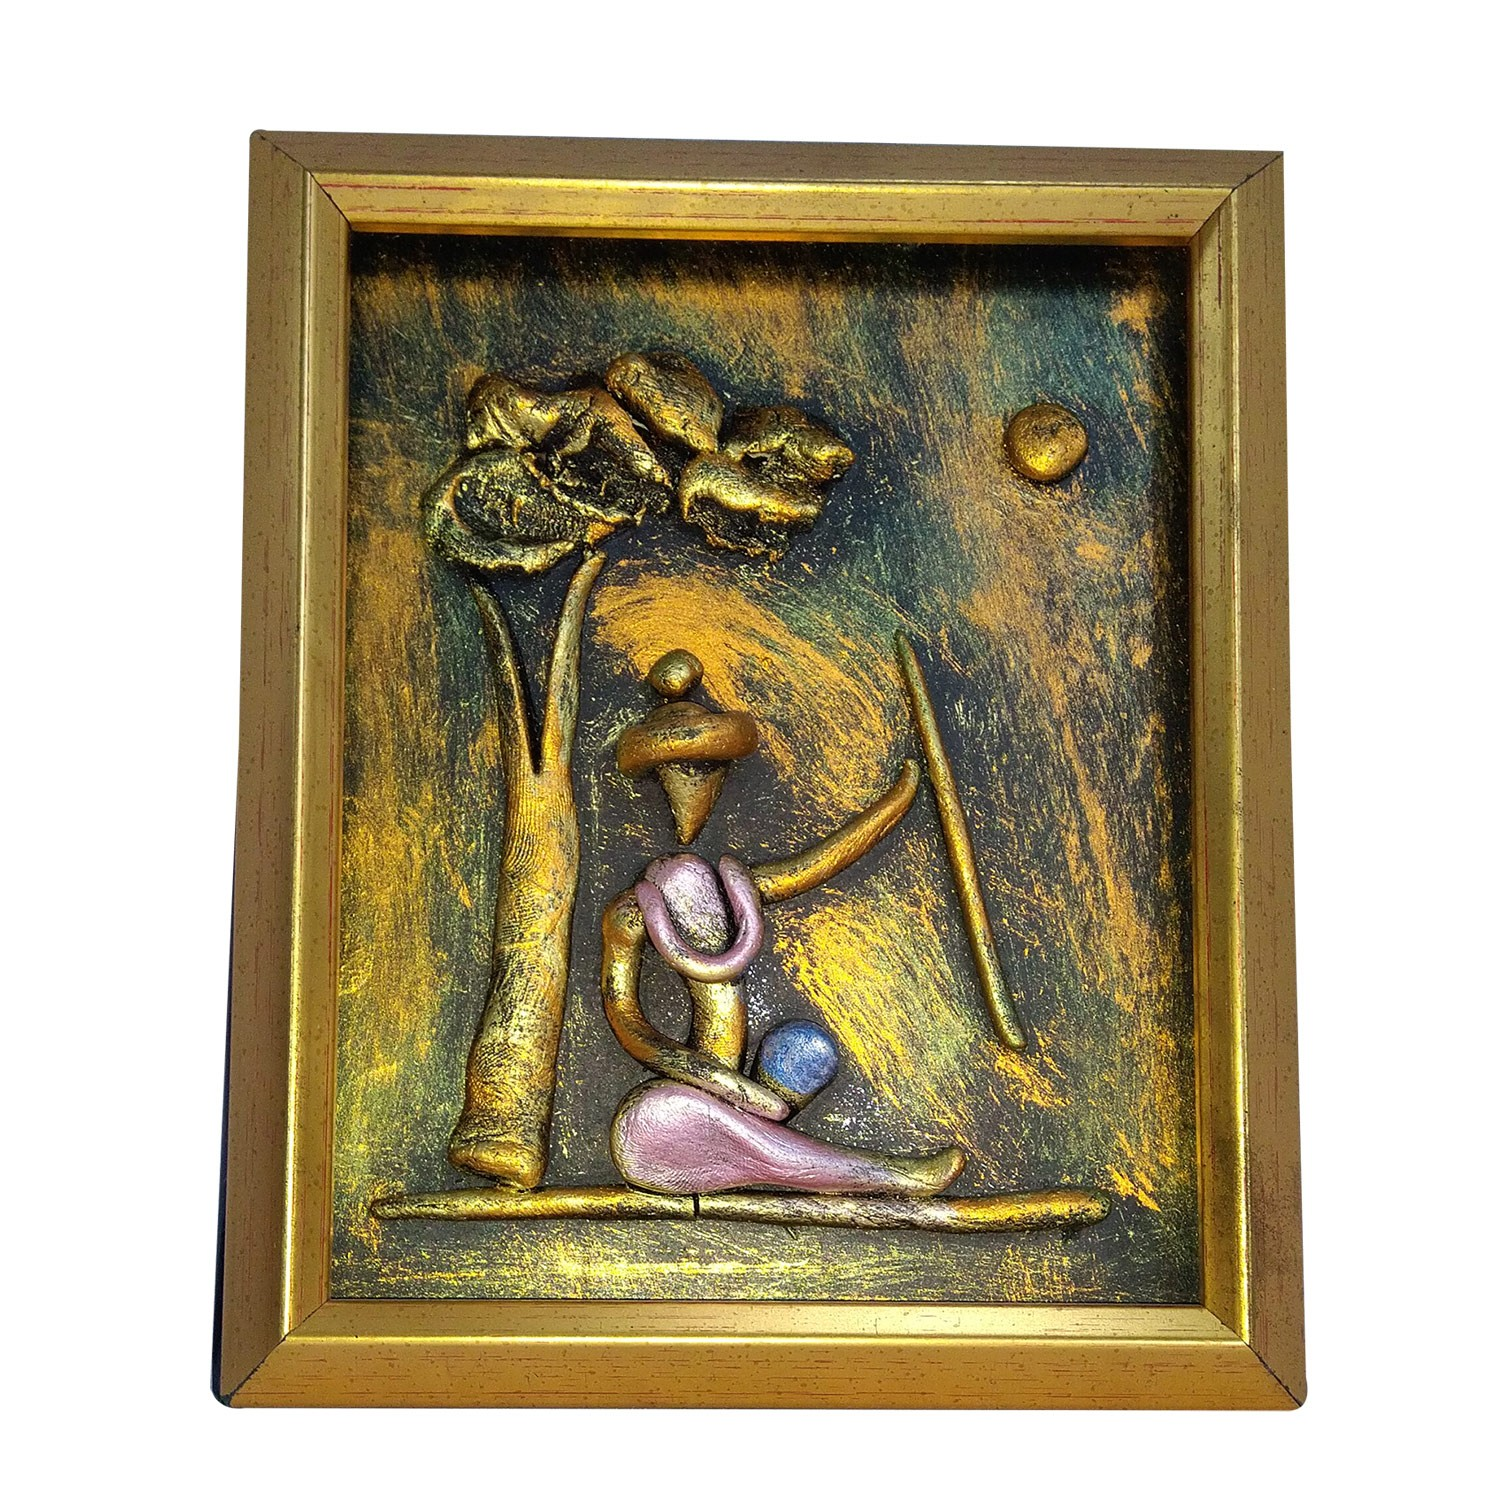 Buy Handmade Decorative New Tribal Art Wall Hanging Painting With